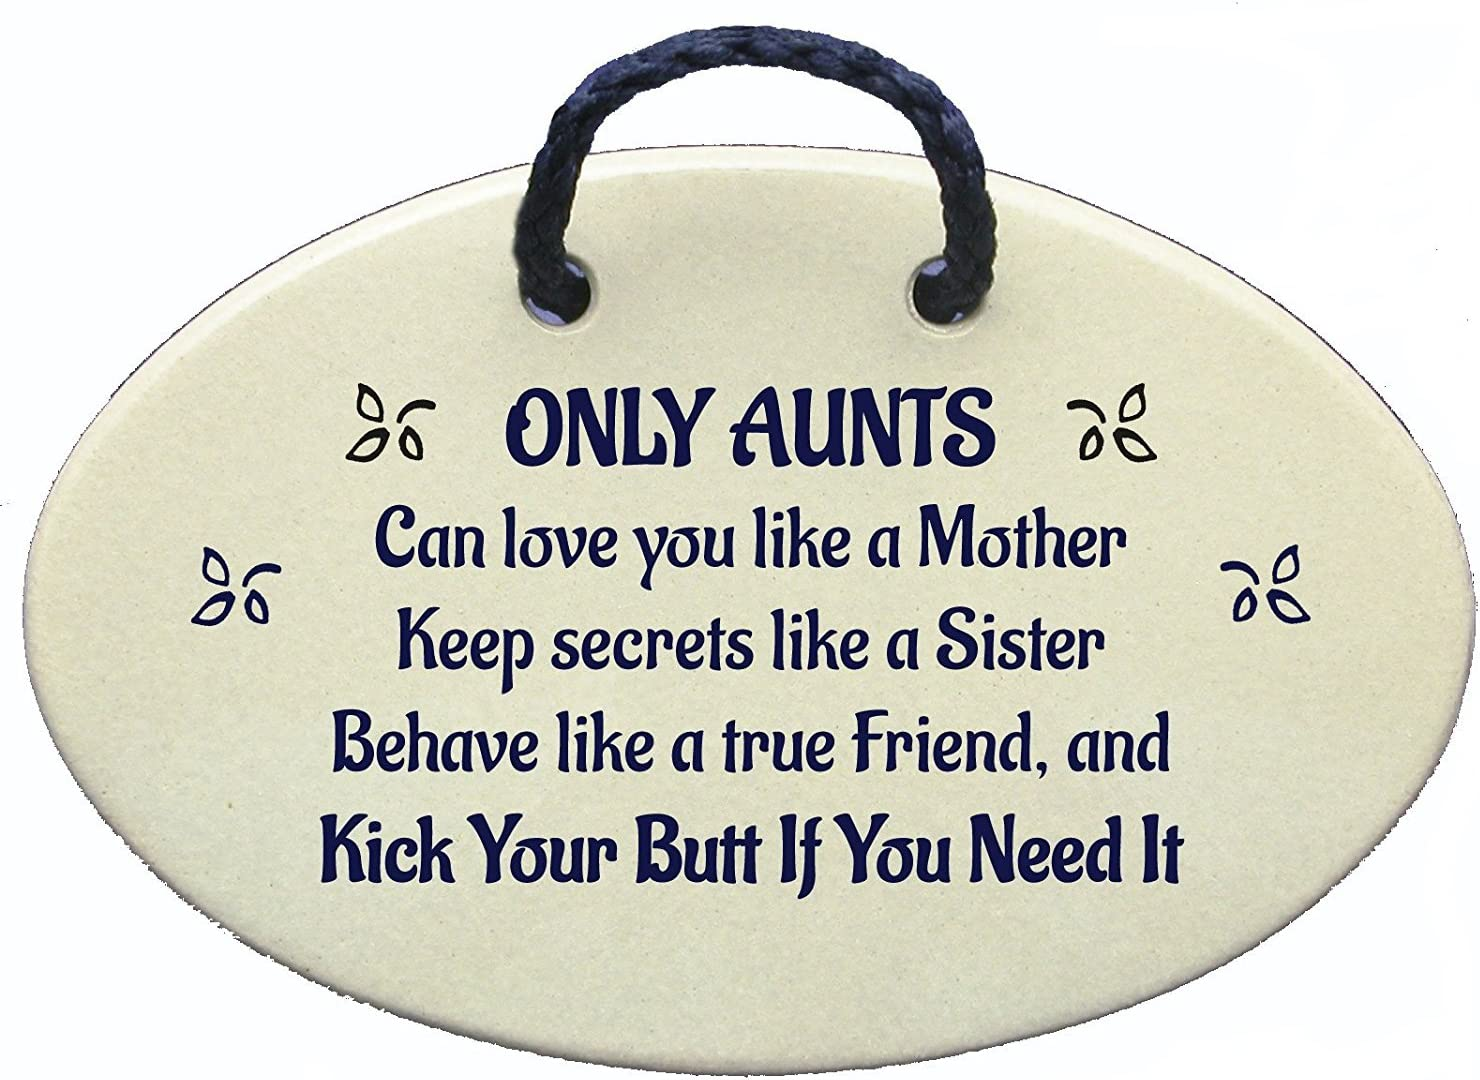 Mountain Meadows Pottery Aunt Gift, Sister, Aunt, Friend. Only an Aunt can Love You Like a Mother, Keep Secrets, Behave Like a True Friend, Kick Your Butt If You Need It. Ceramic plaques Made in USA.